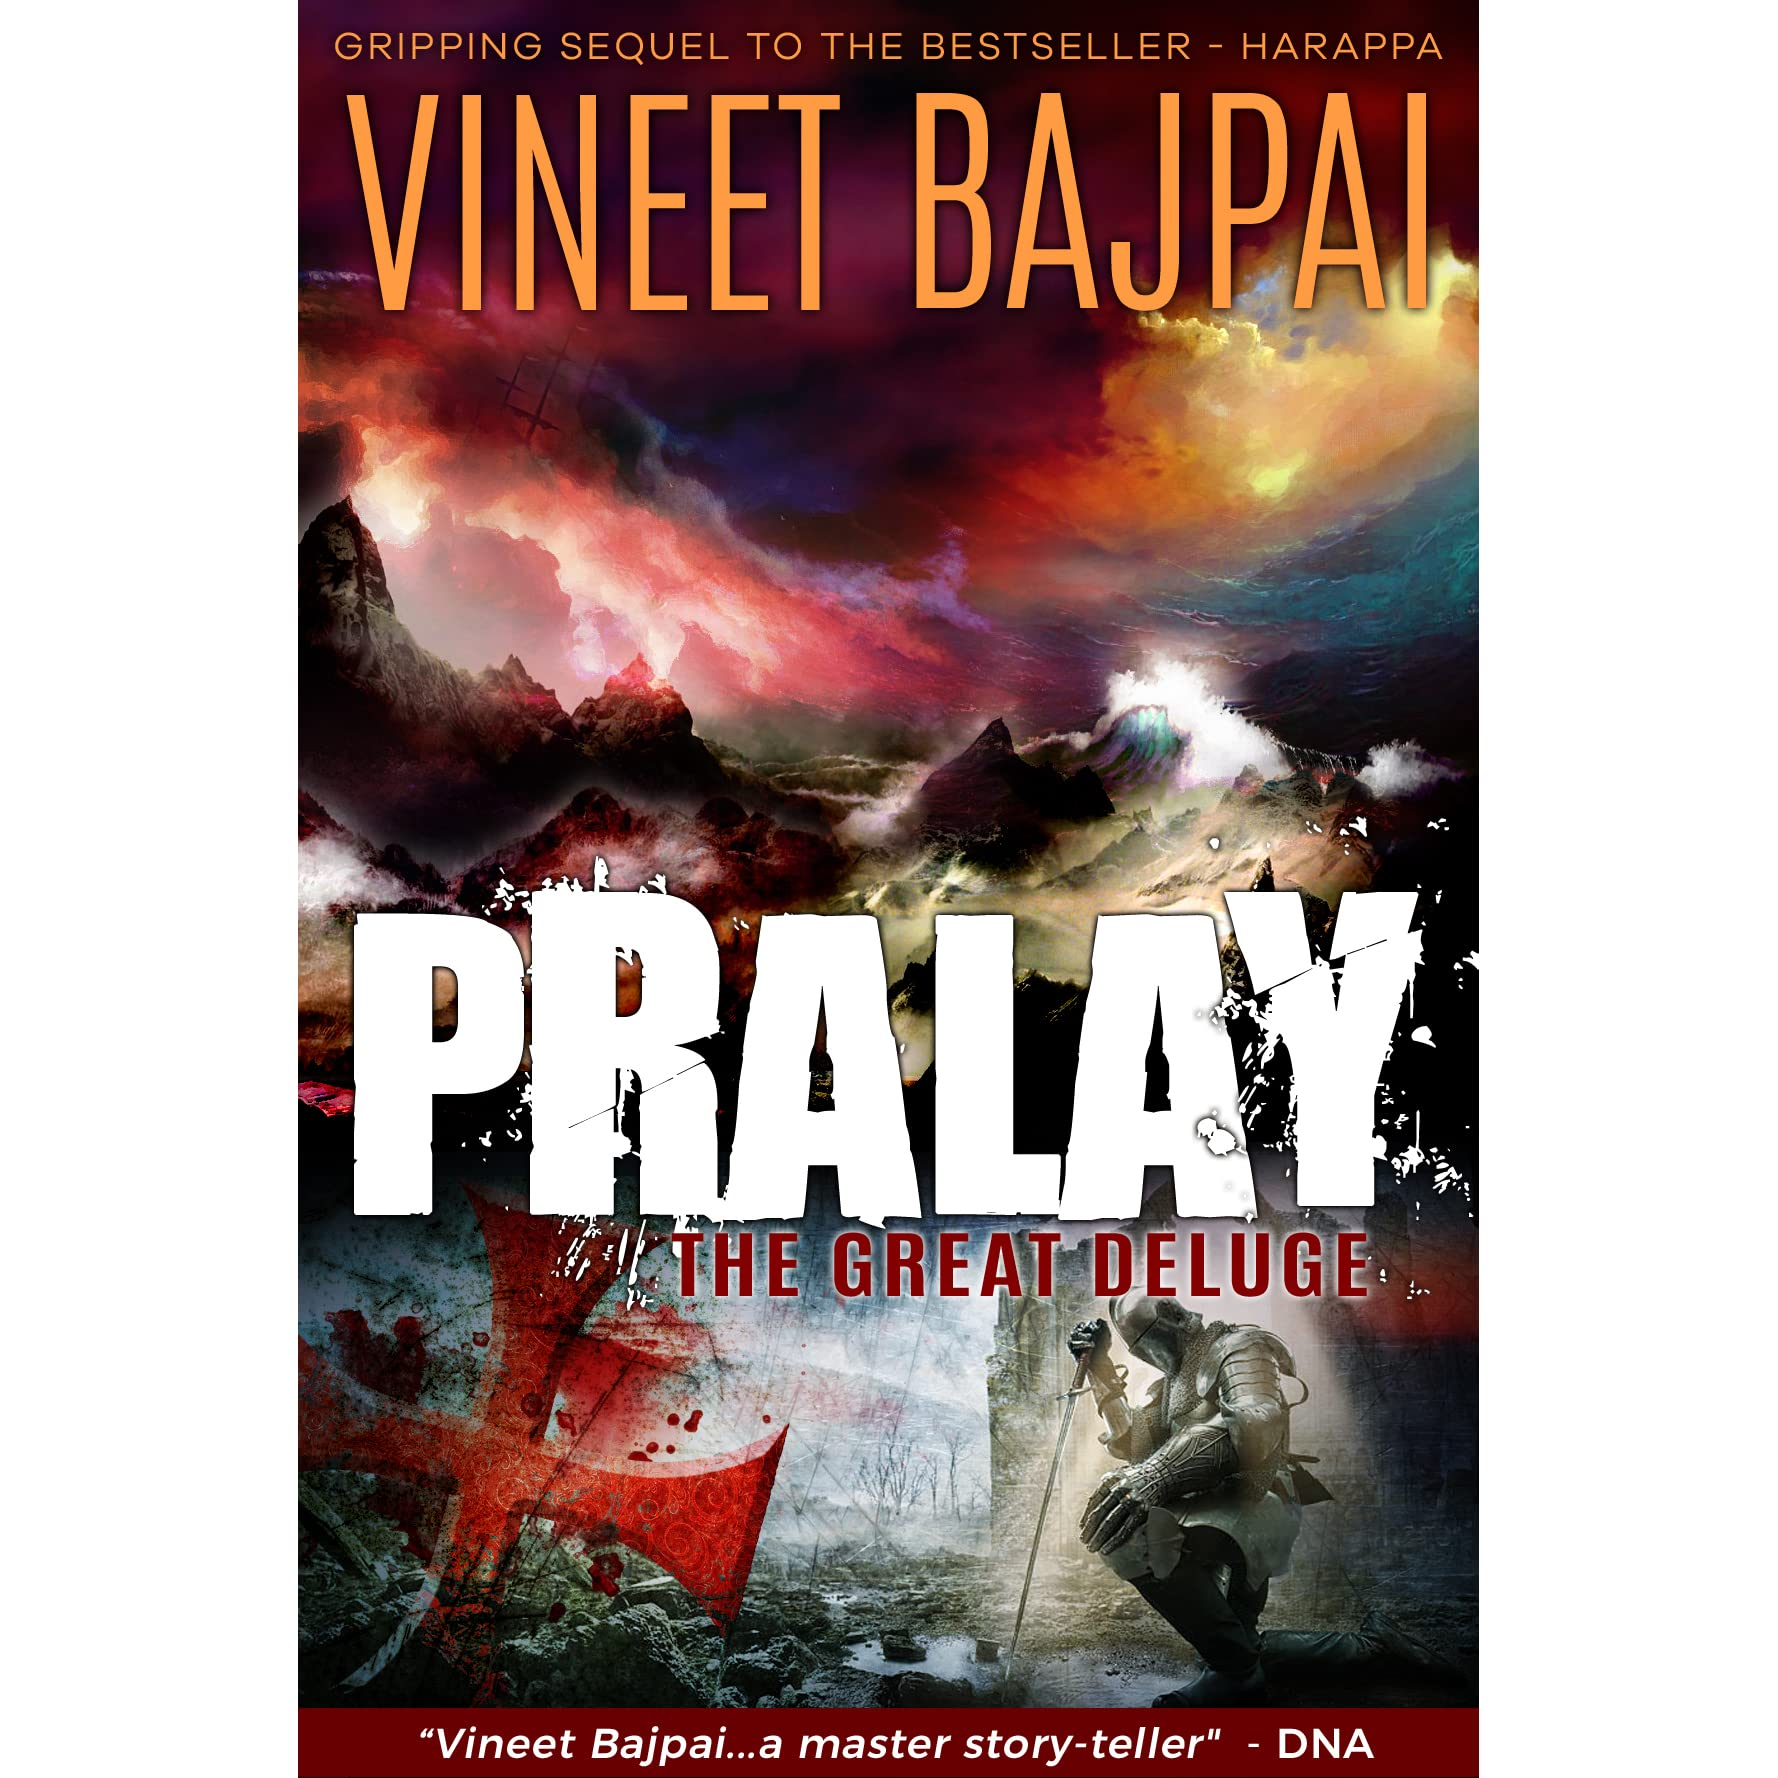 PRALAY: The Great Deluge by Vineet Bajpai